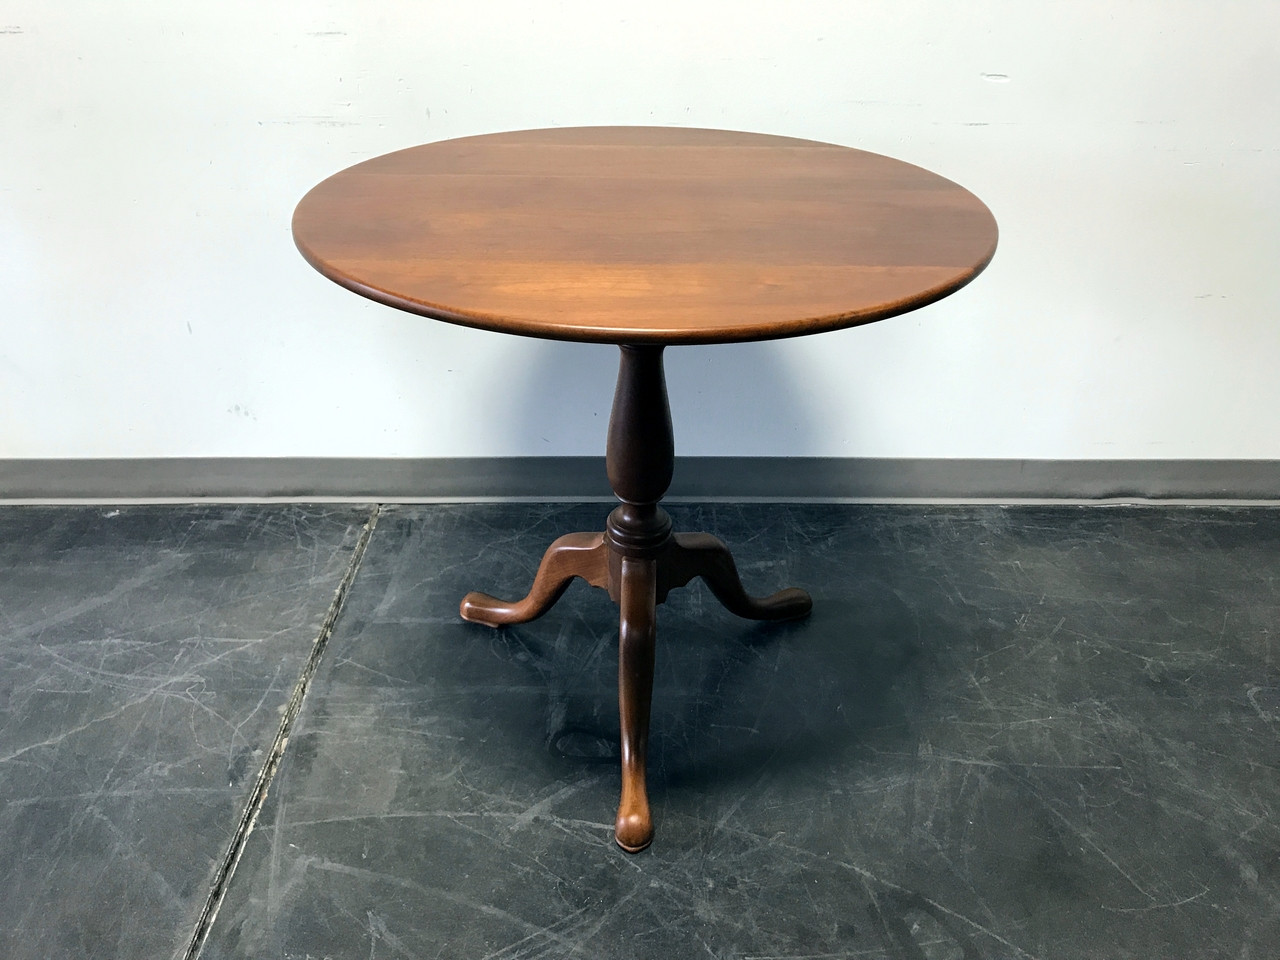 SOLD OUT   Vintage Walnut Round Candle Stand Pedestal Table